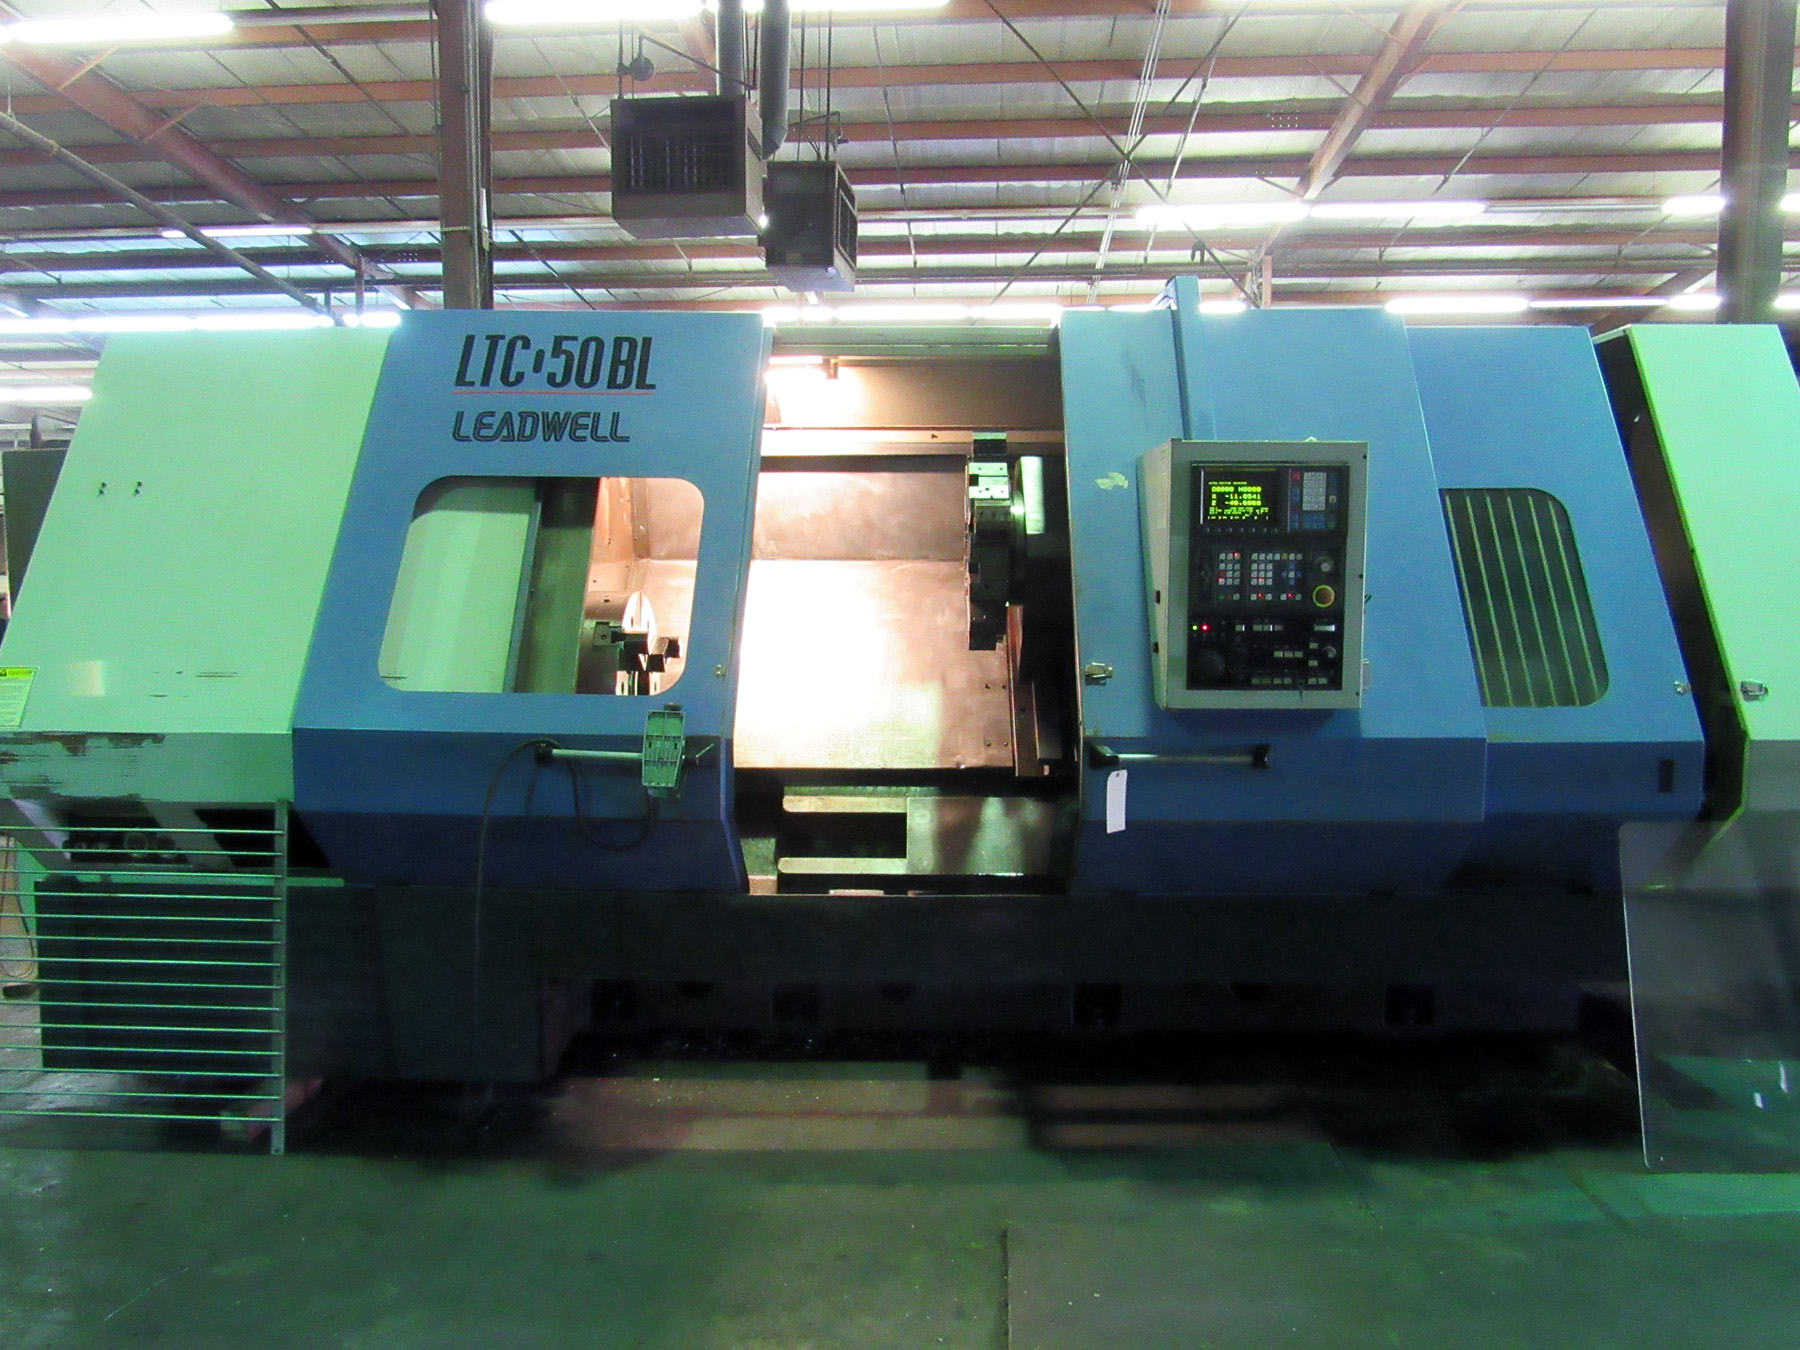 USED, LEADWELL MODEL LTC-50 BL CNC LATHE